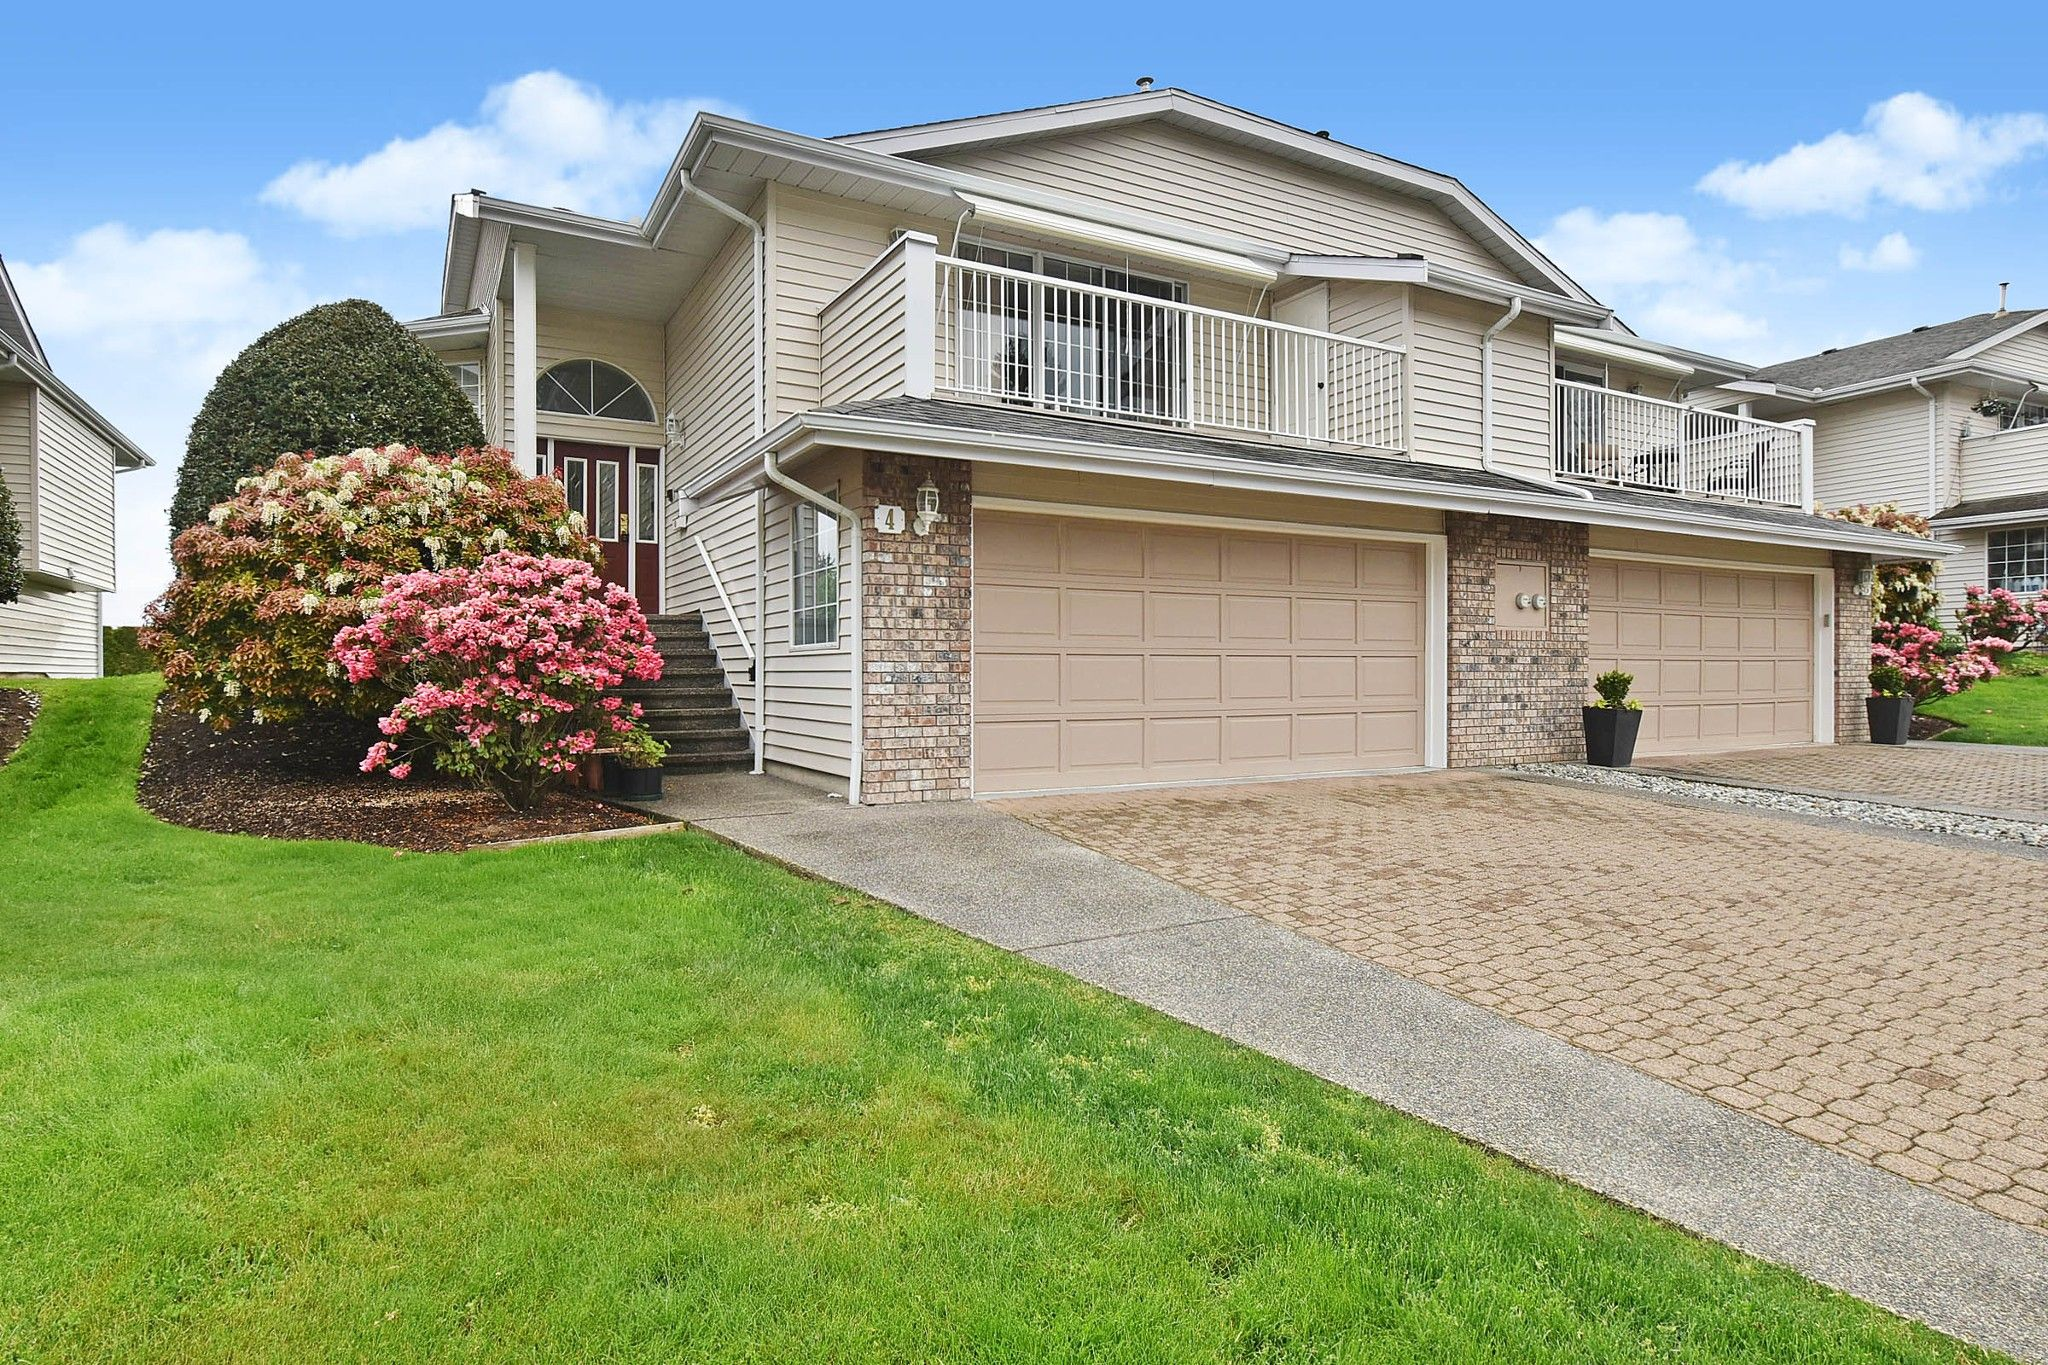 Main Photo: 4 32925 Maclure Road in Abbotsford: Central Abbotsford Townhouse for sale : MLS®# R2575010